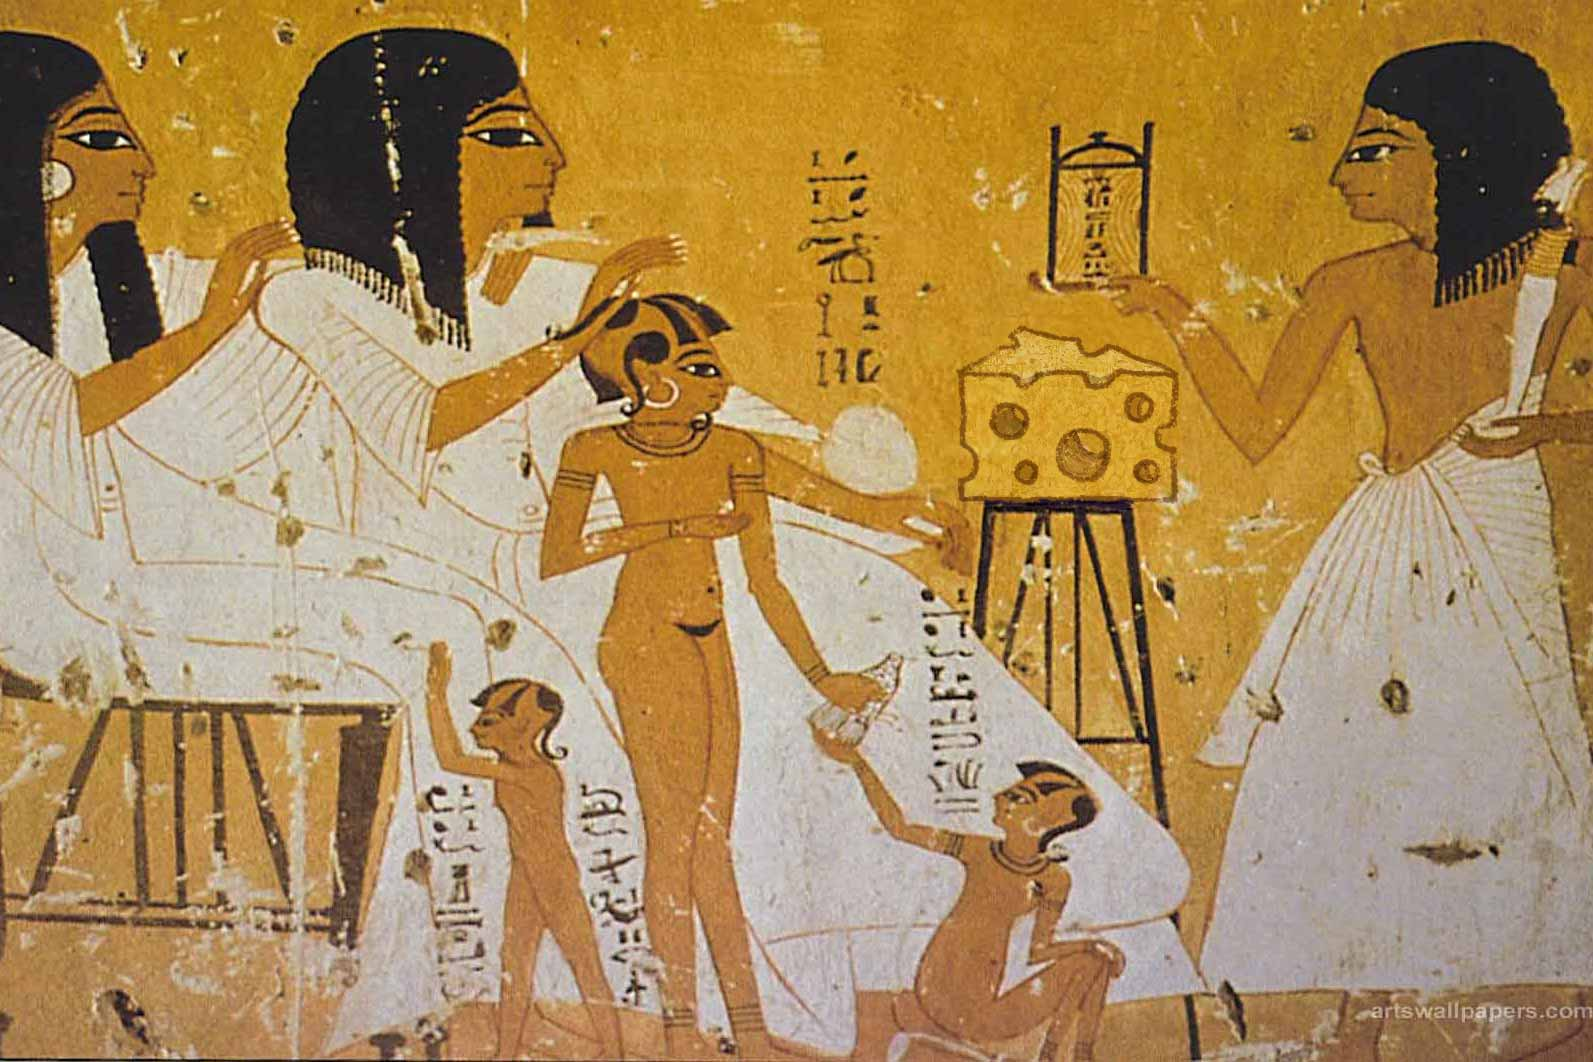 Artist's depiction of how great it must have been to eat this tomb cheese when it was fresh.